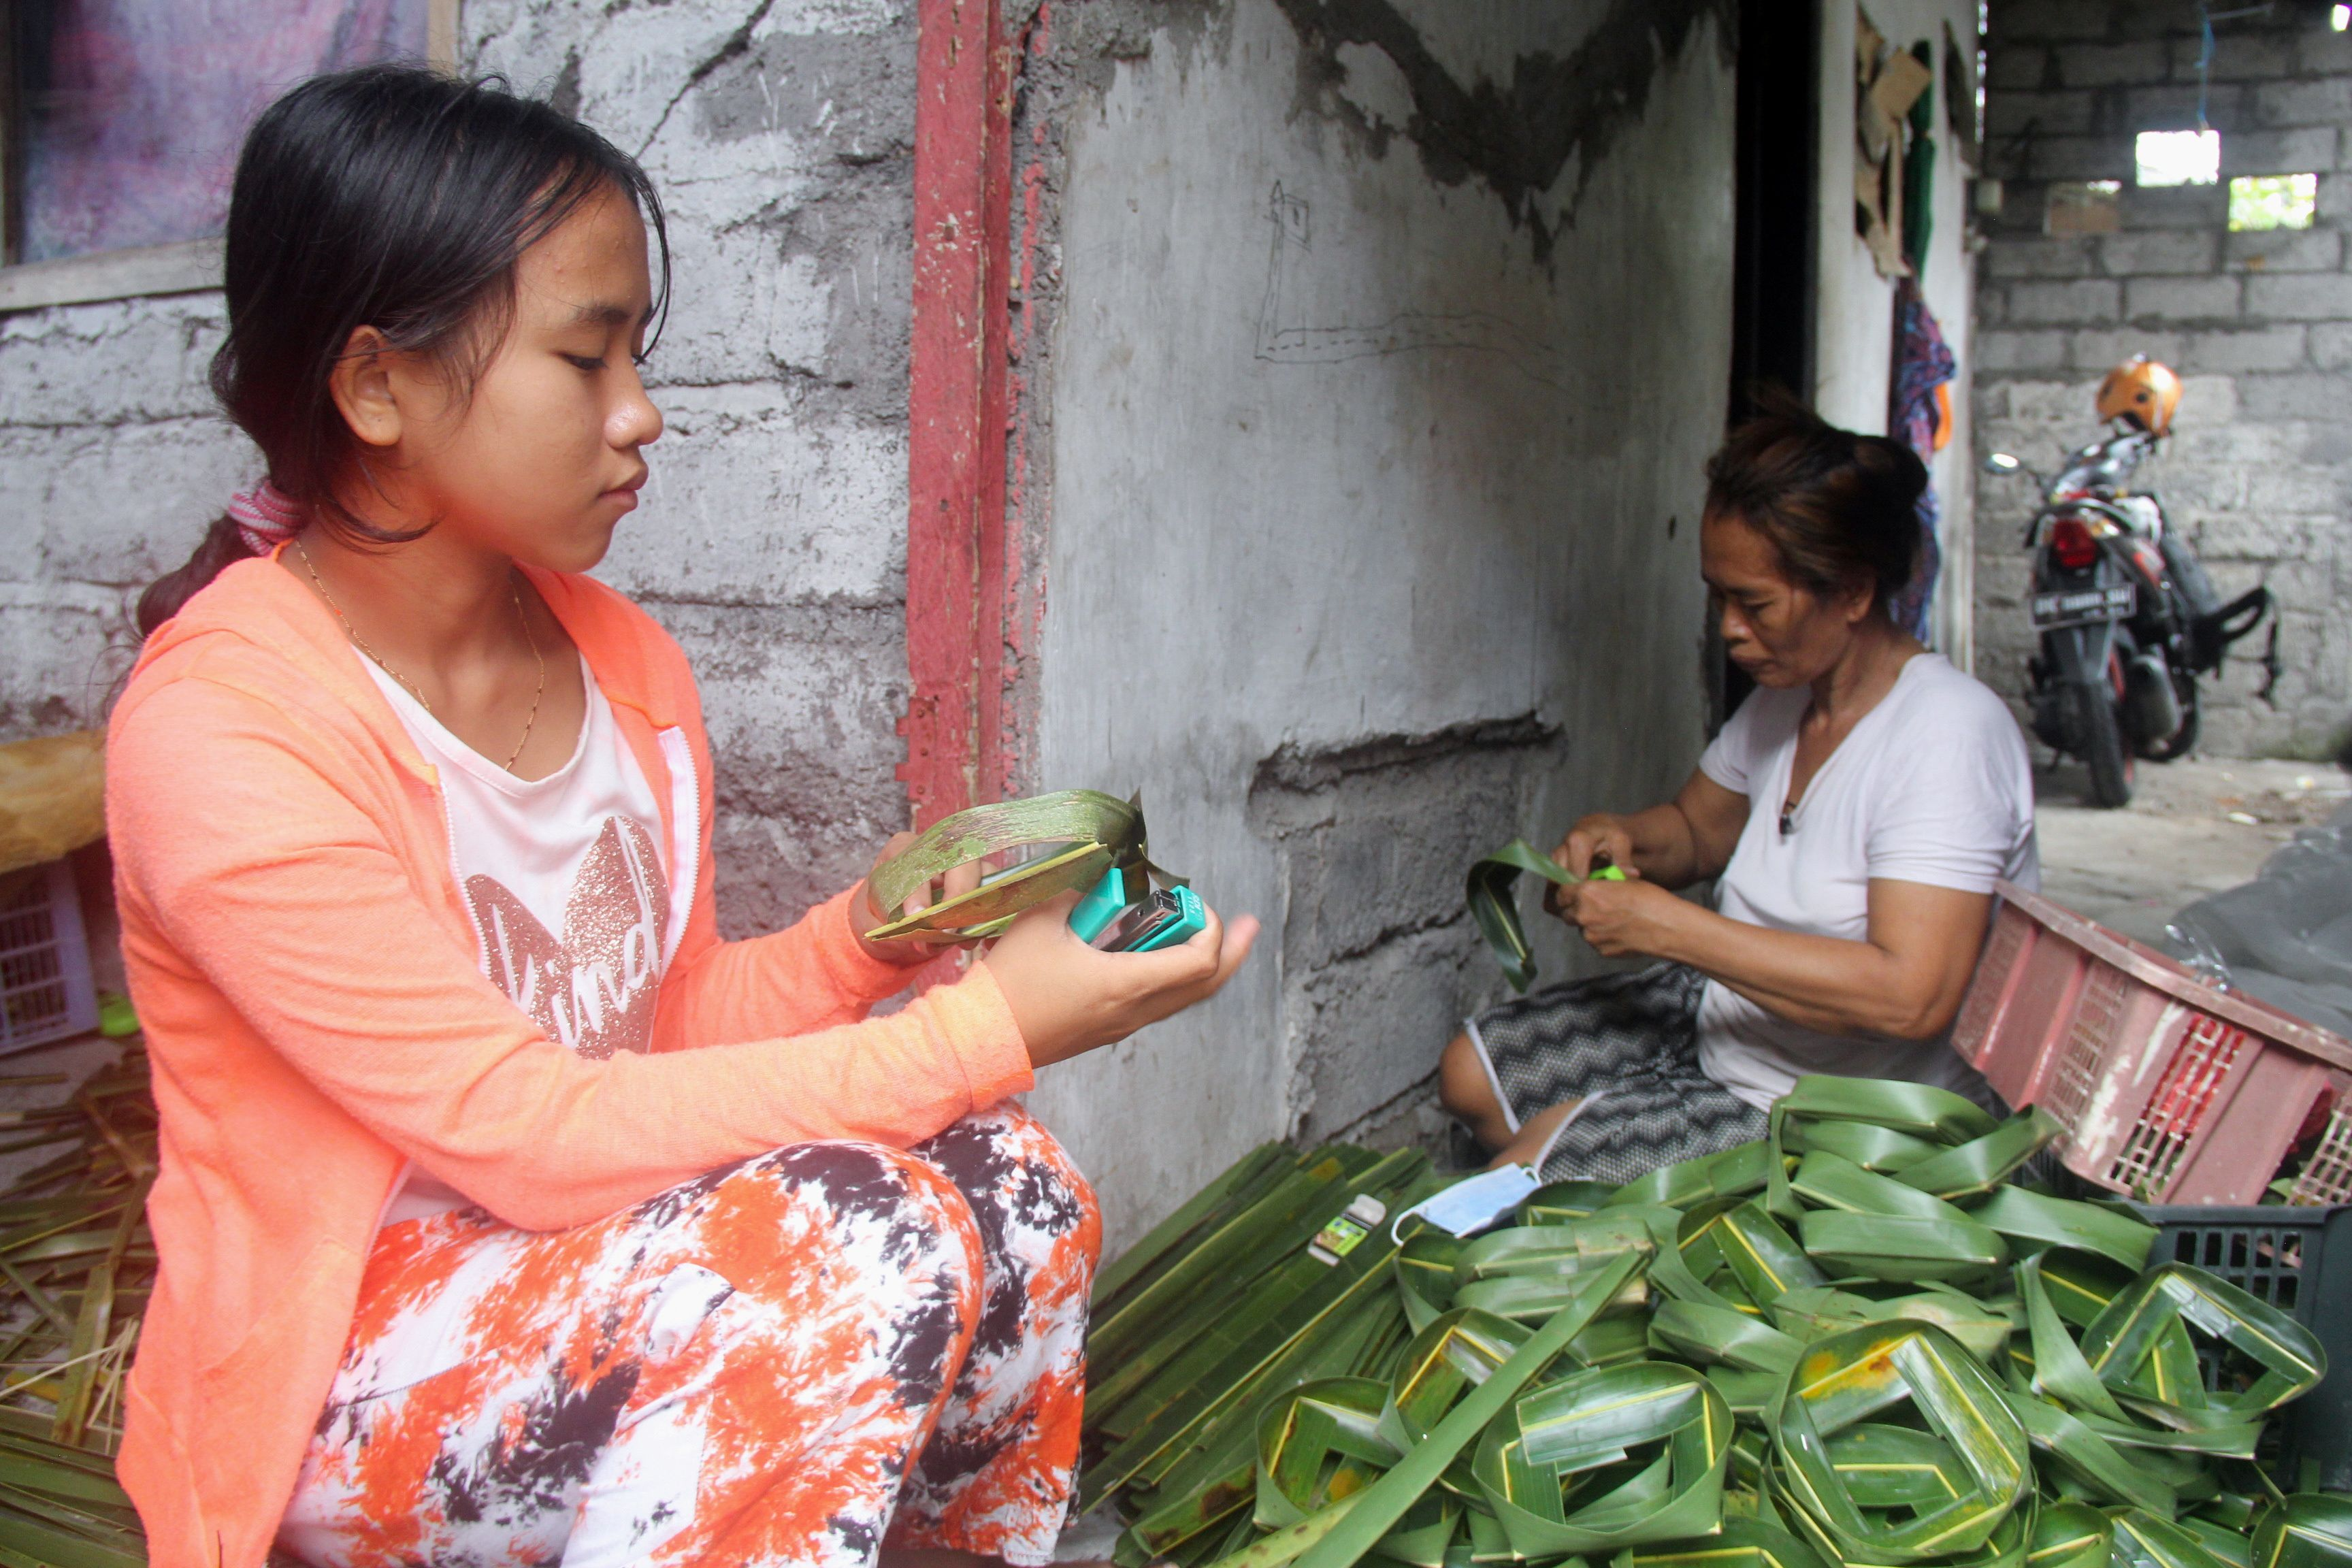 Ni Luh Nael, 13-years-old, helps her grandmother after dropping out of school during the coronavirus disease (COVID-19) pandemic in Denpasar, Bali, Indonesia, September 11, 2021. Picture taken September 11, 2021. REUTERS/Wayan Sukarda  NO RESALES. NO ARCHIVES